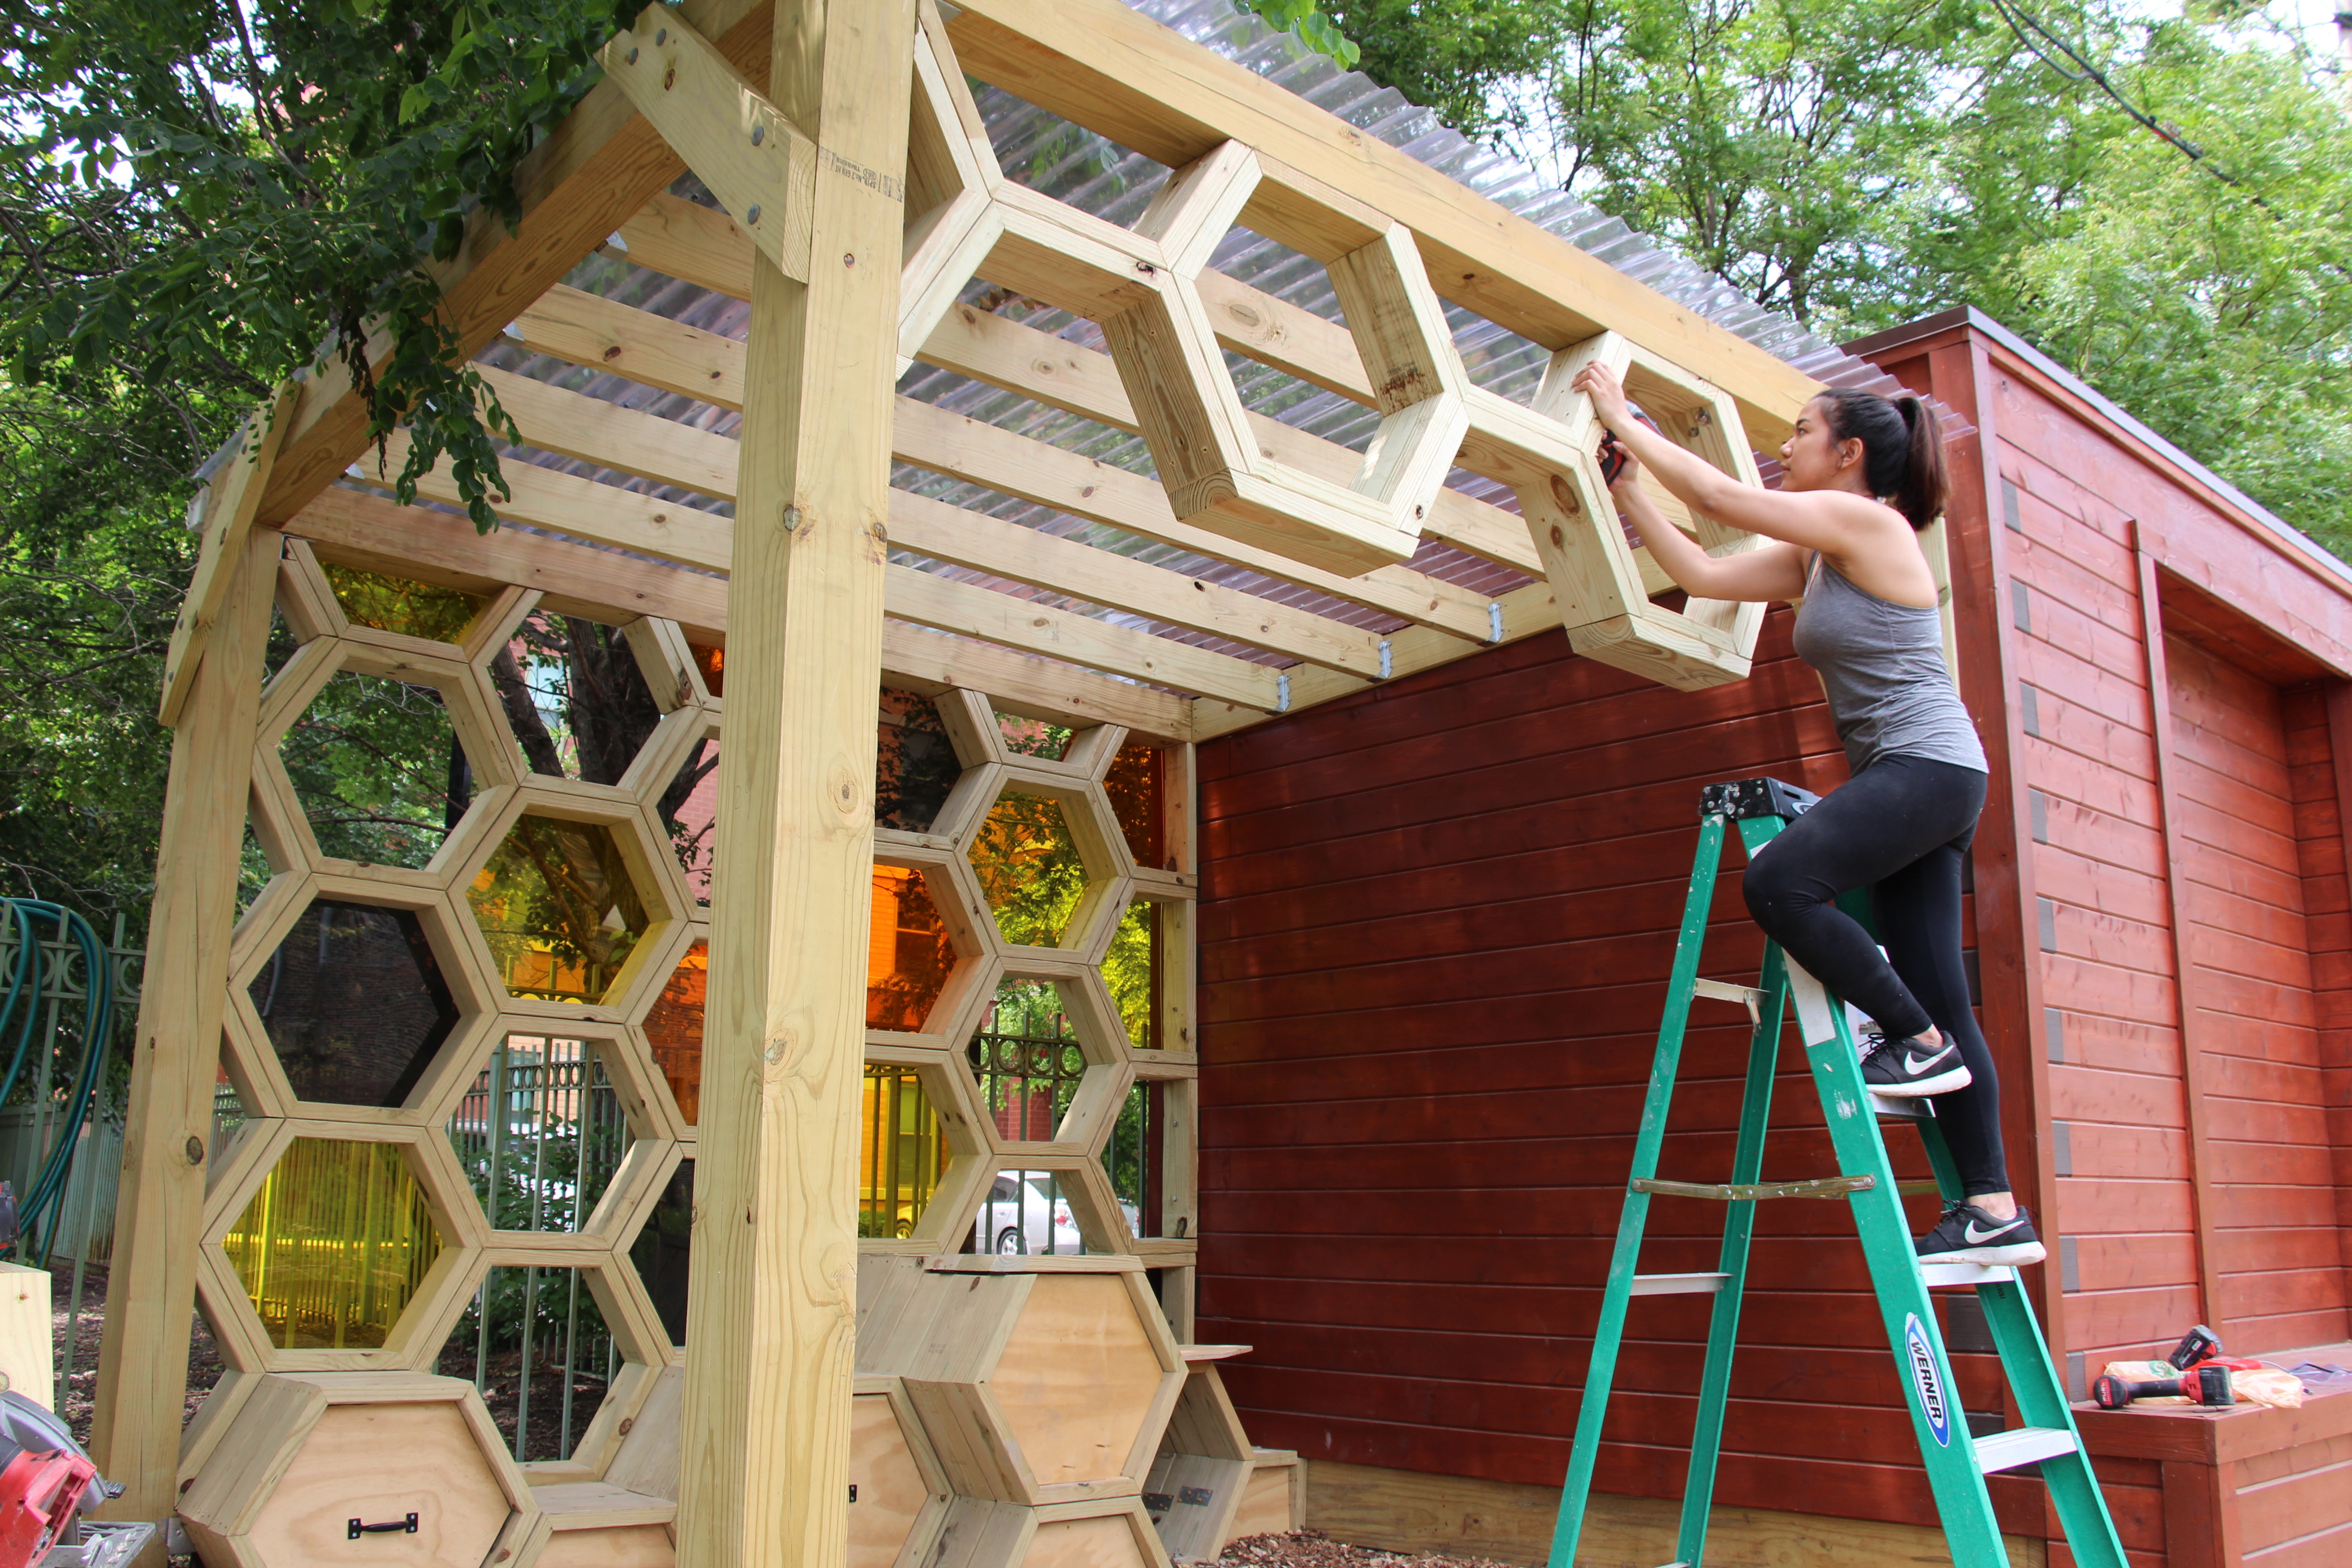 """Hsu Myat Aungworks on """"The Hive"""" at the El Paseo Community Garden in Pilsen."""